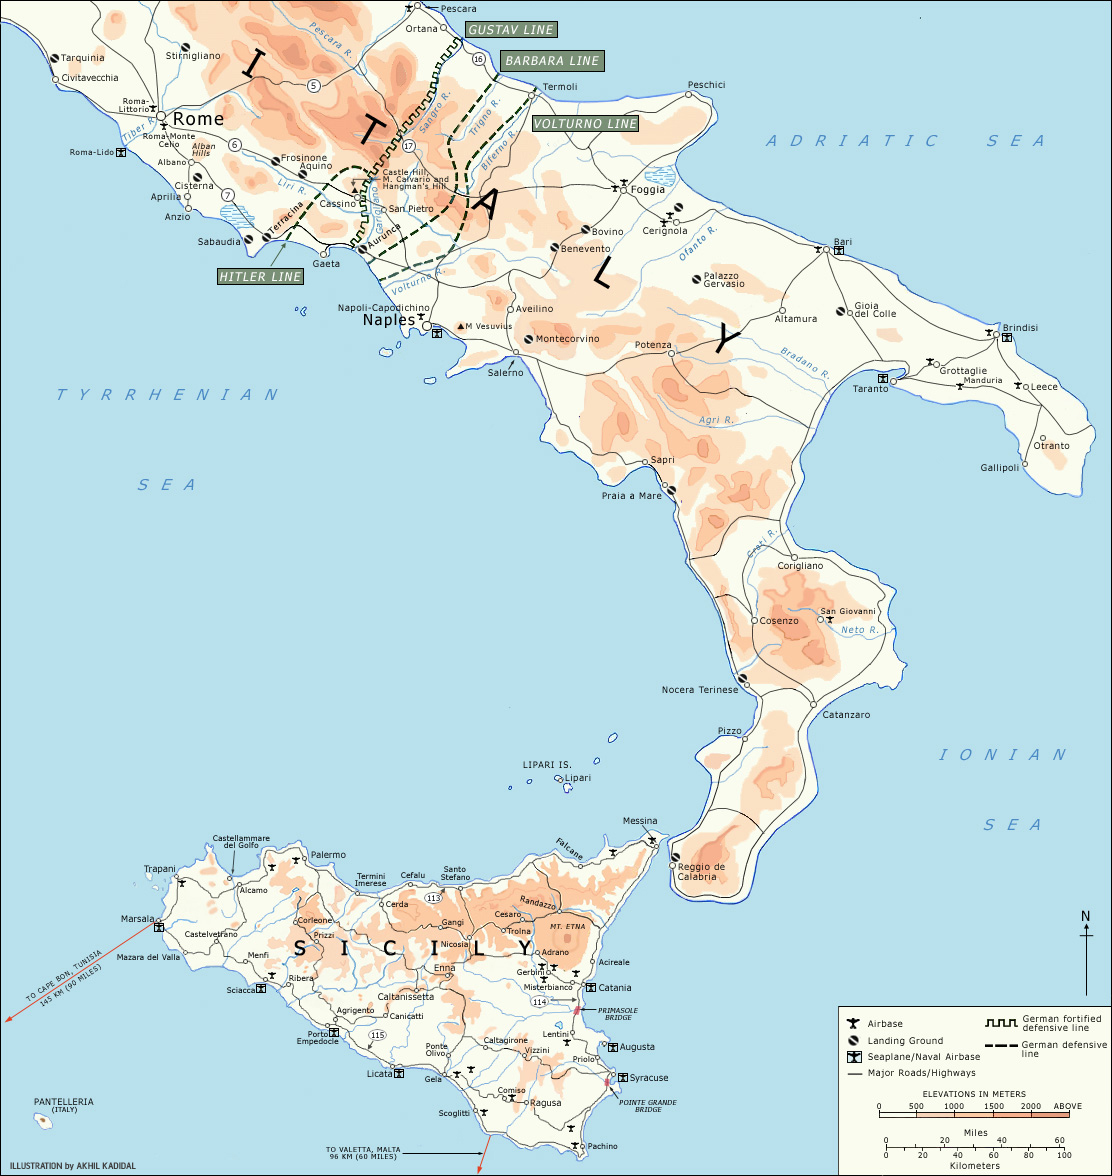 italys decision to enter wwii Italians in world war ii when italy entered the war in 1940, its forces were equipped more in line with the first world war, rather than the second (1/5) dangerous missions - taranto - world war ii italy's artillery included vestiges of the previous century.